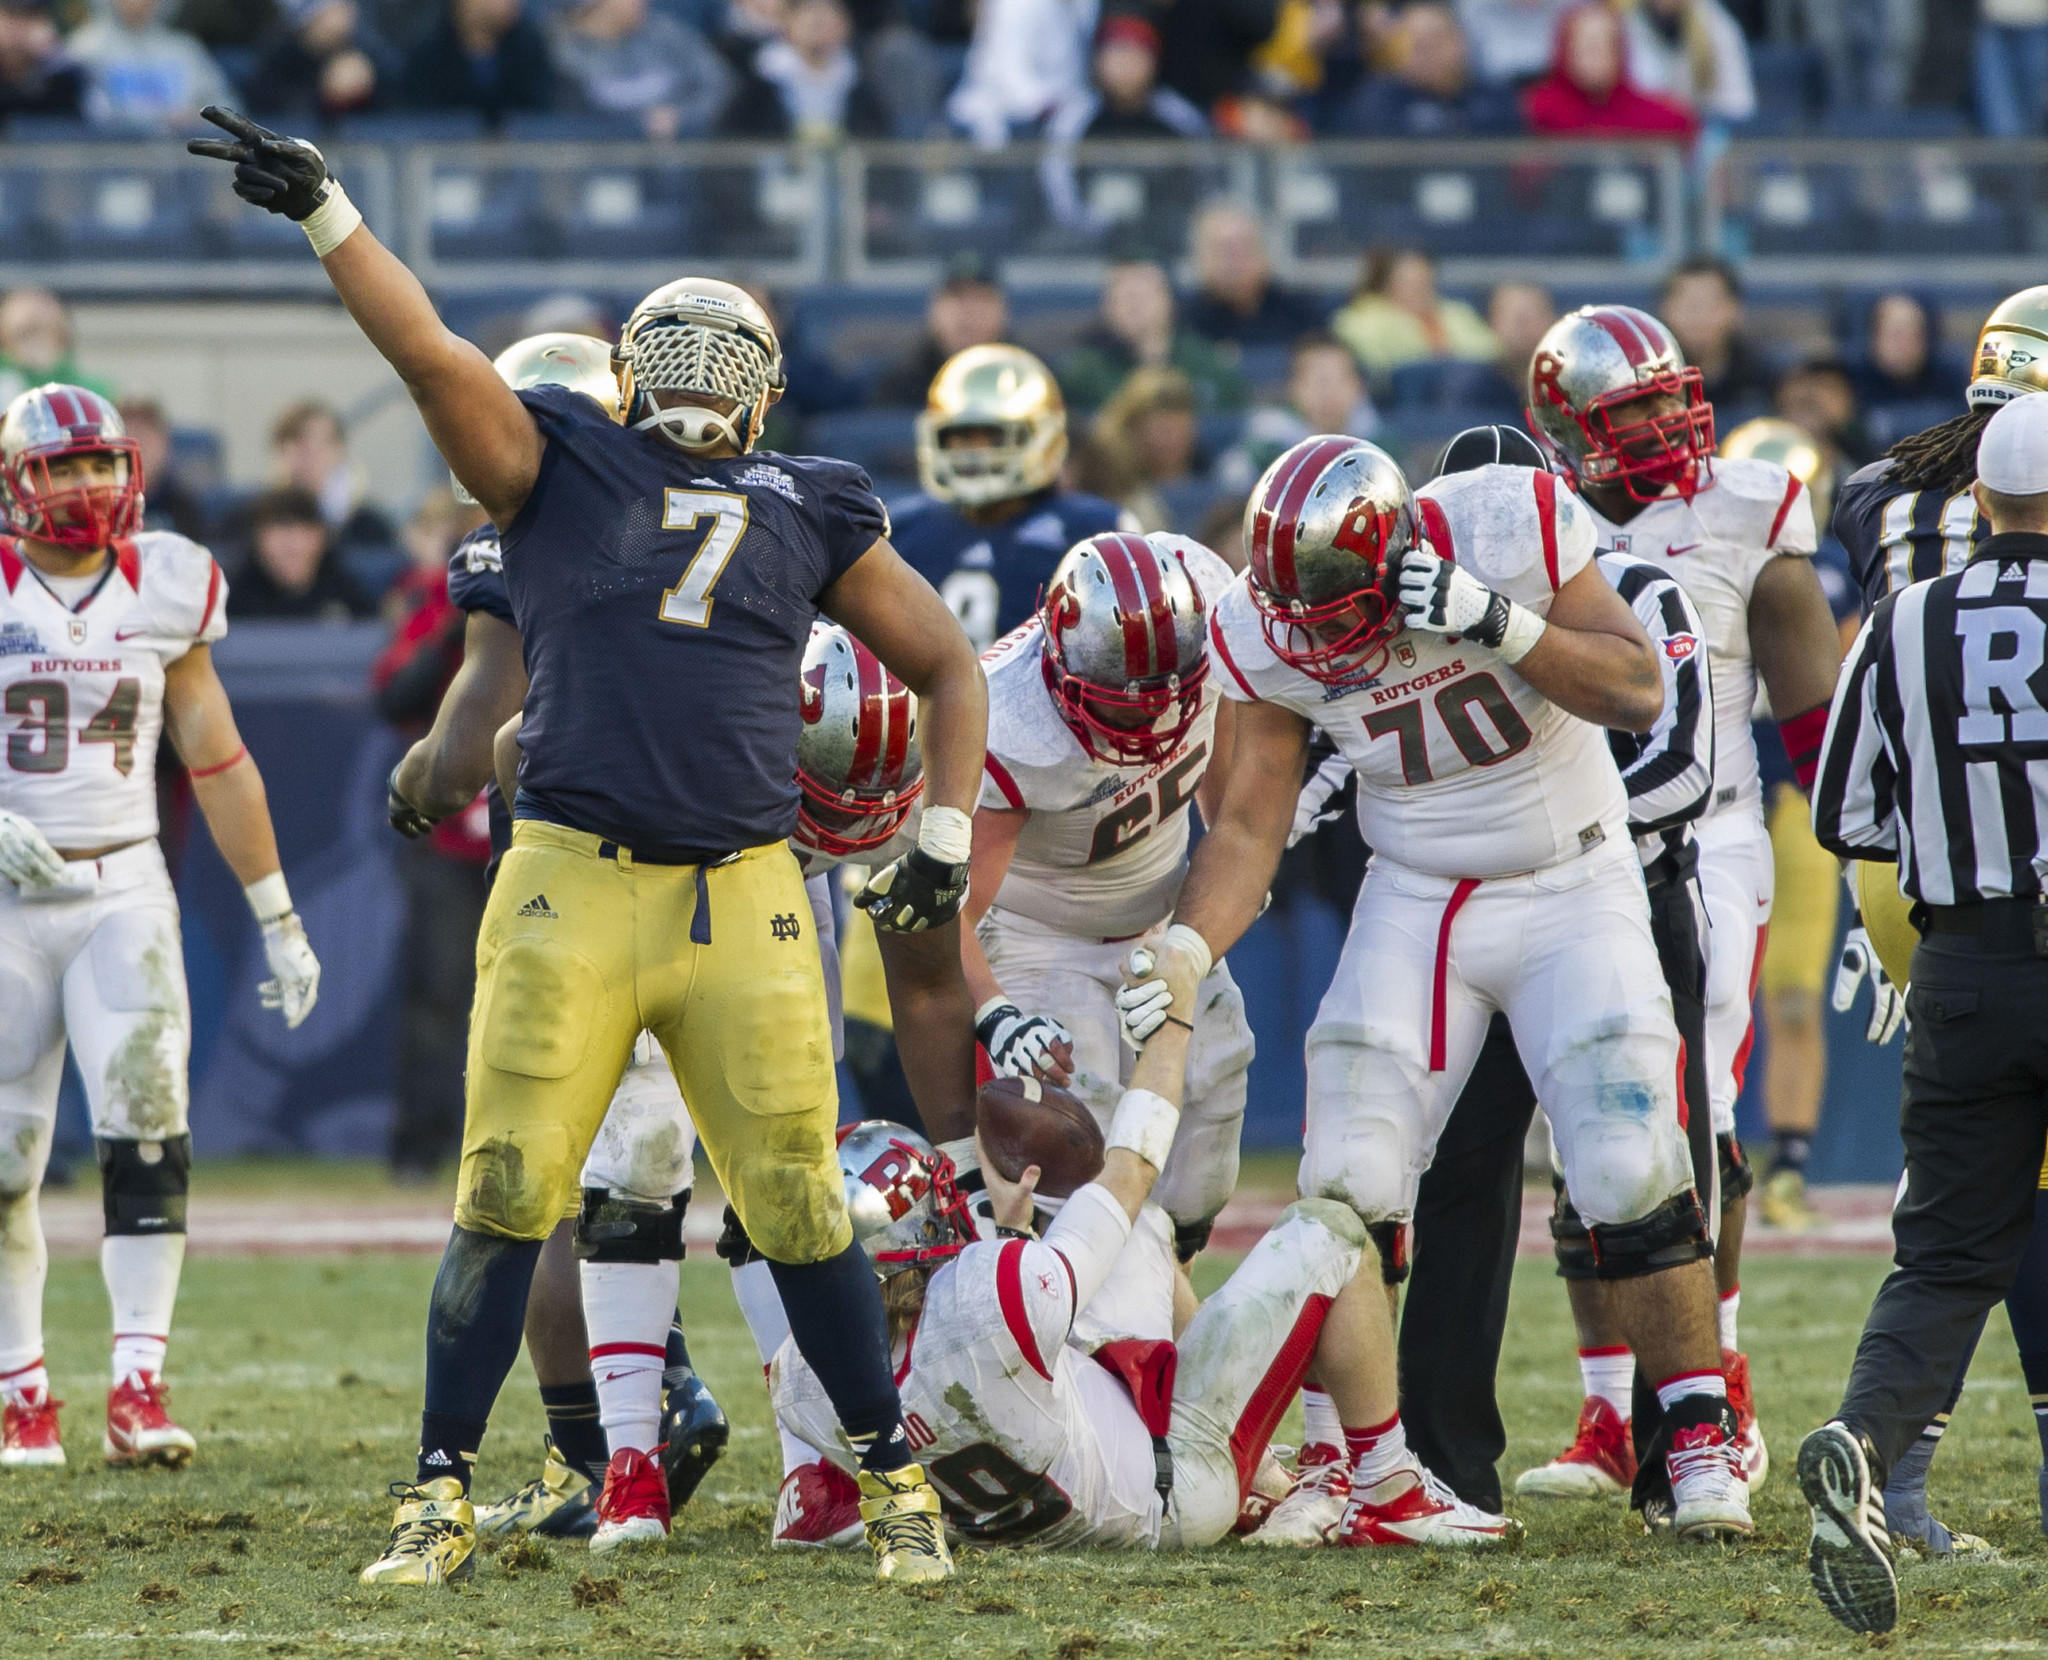 Notre Dame defensive end Stephon Tuitt celebrates after sacking Rutgers quarterback Chas Dodd in the fourth quarter of the Pinstripe Bowl at Yankee Stadium.